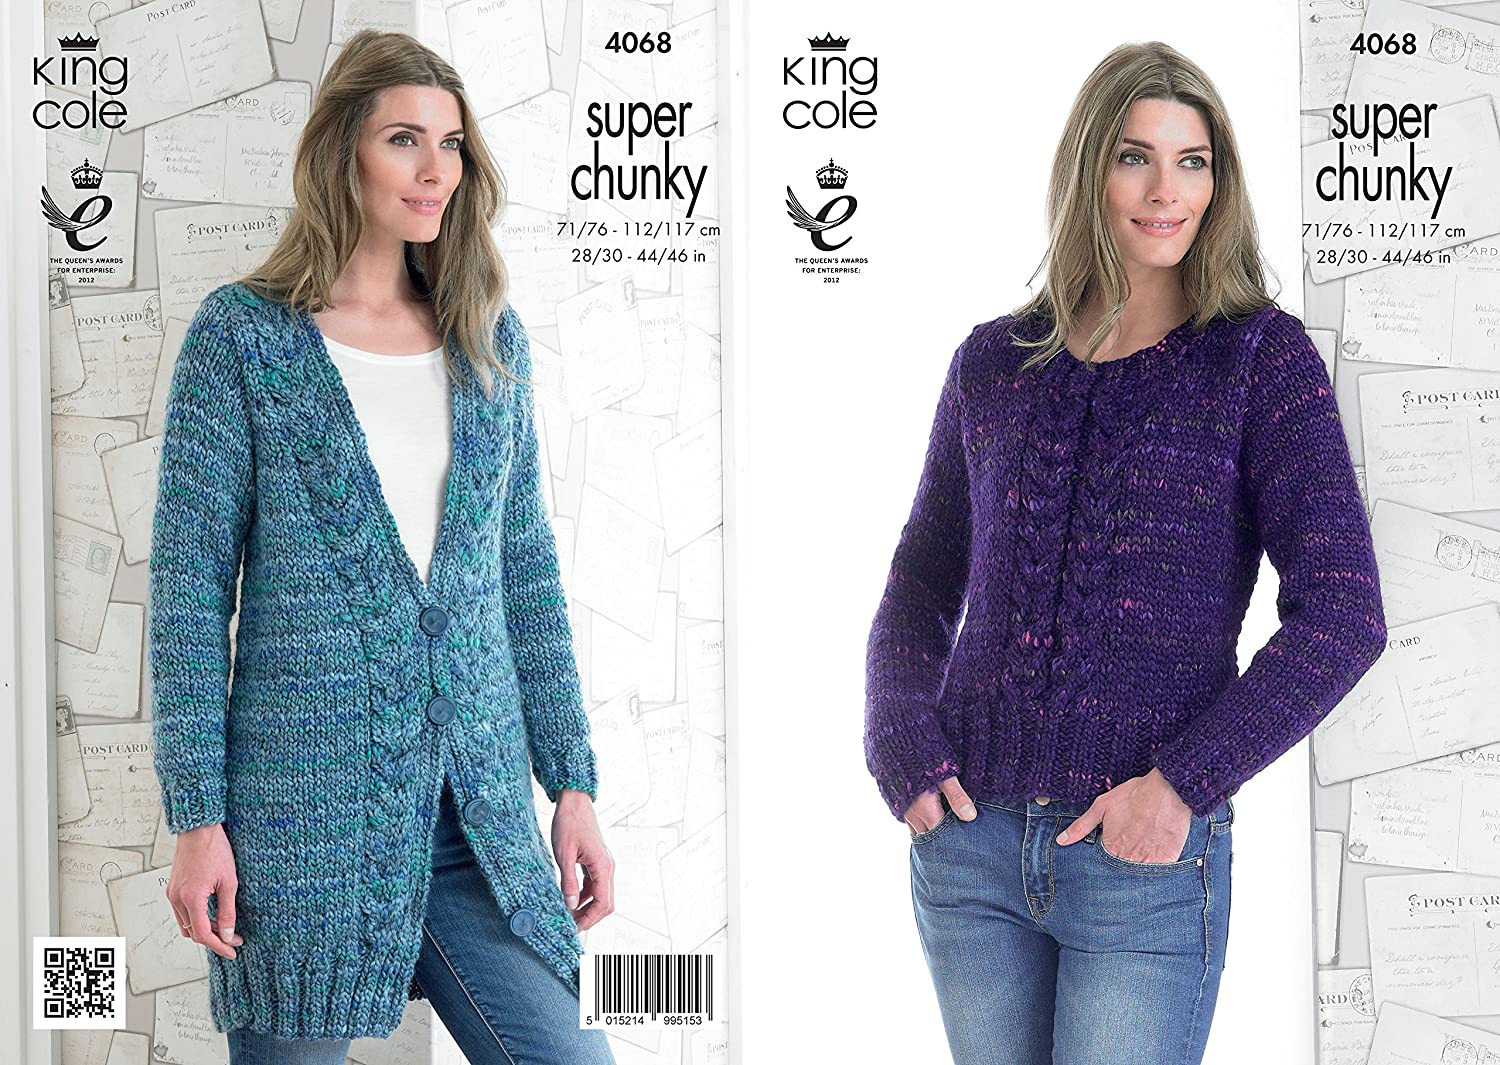 King Cole Ladies Gypsy Super Chunky Knitting Pattern Womens Cable ...